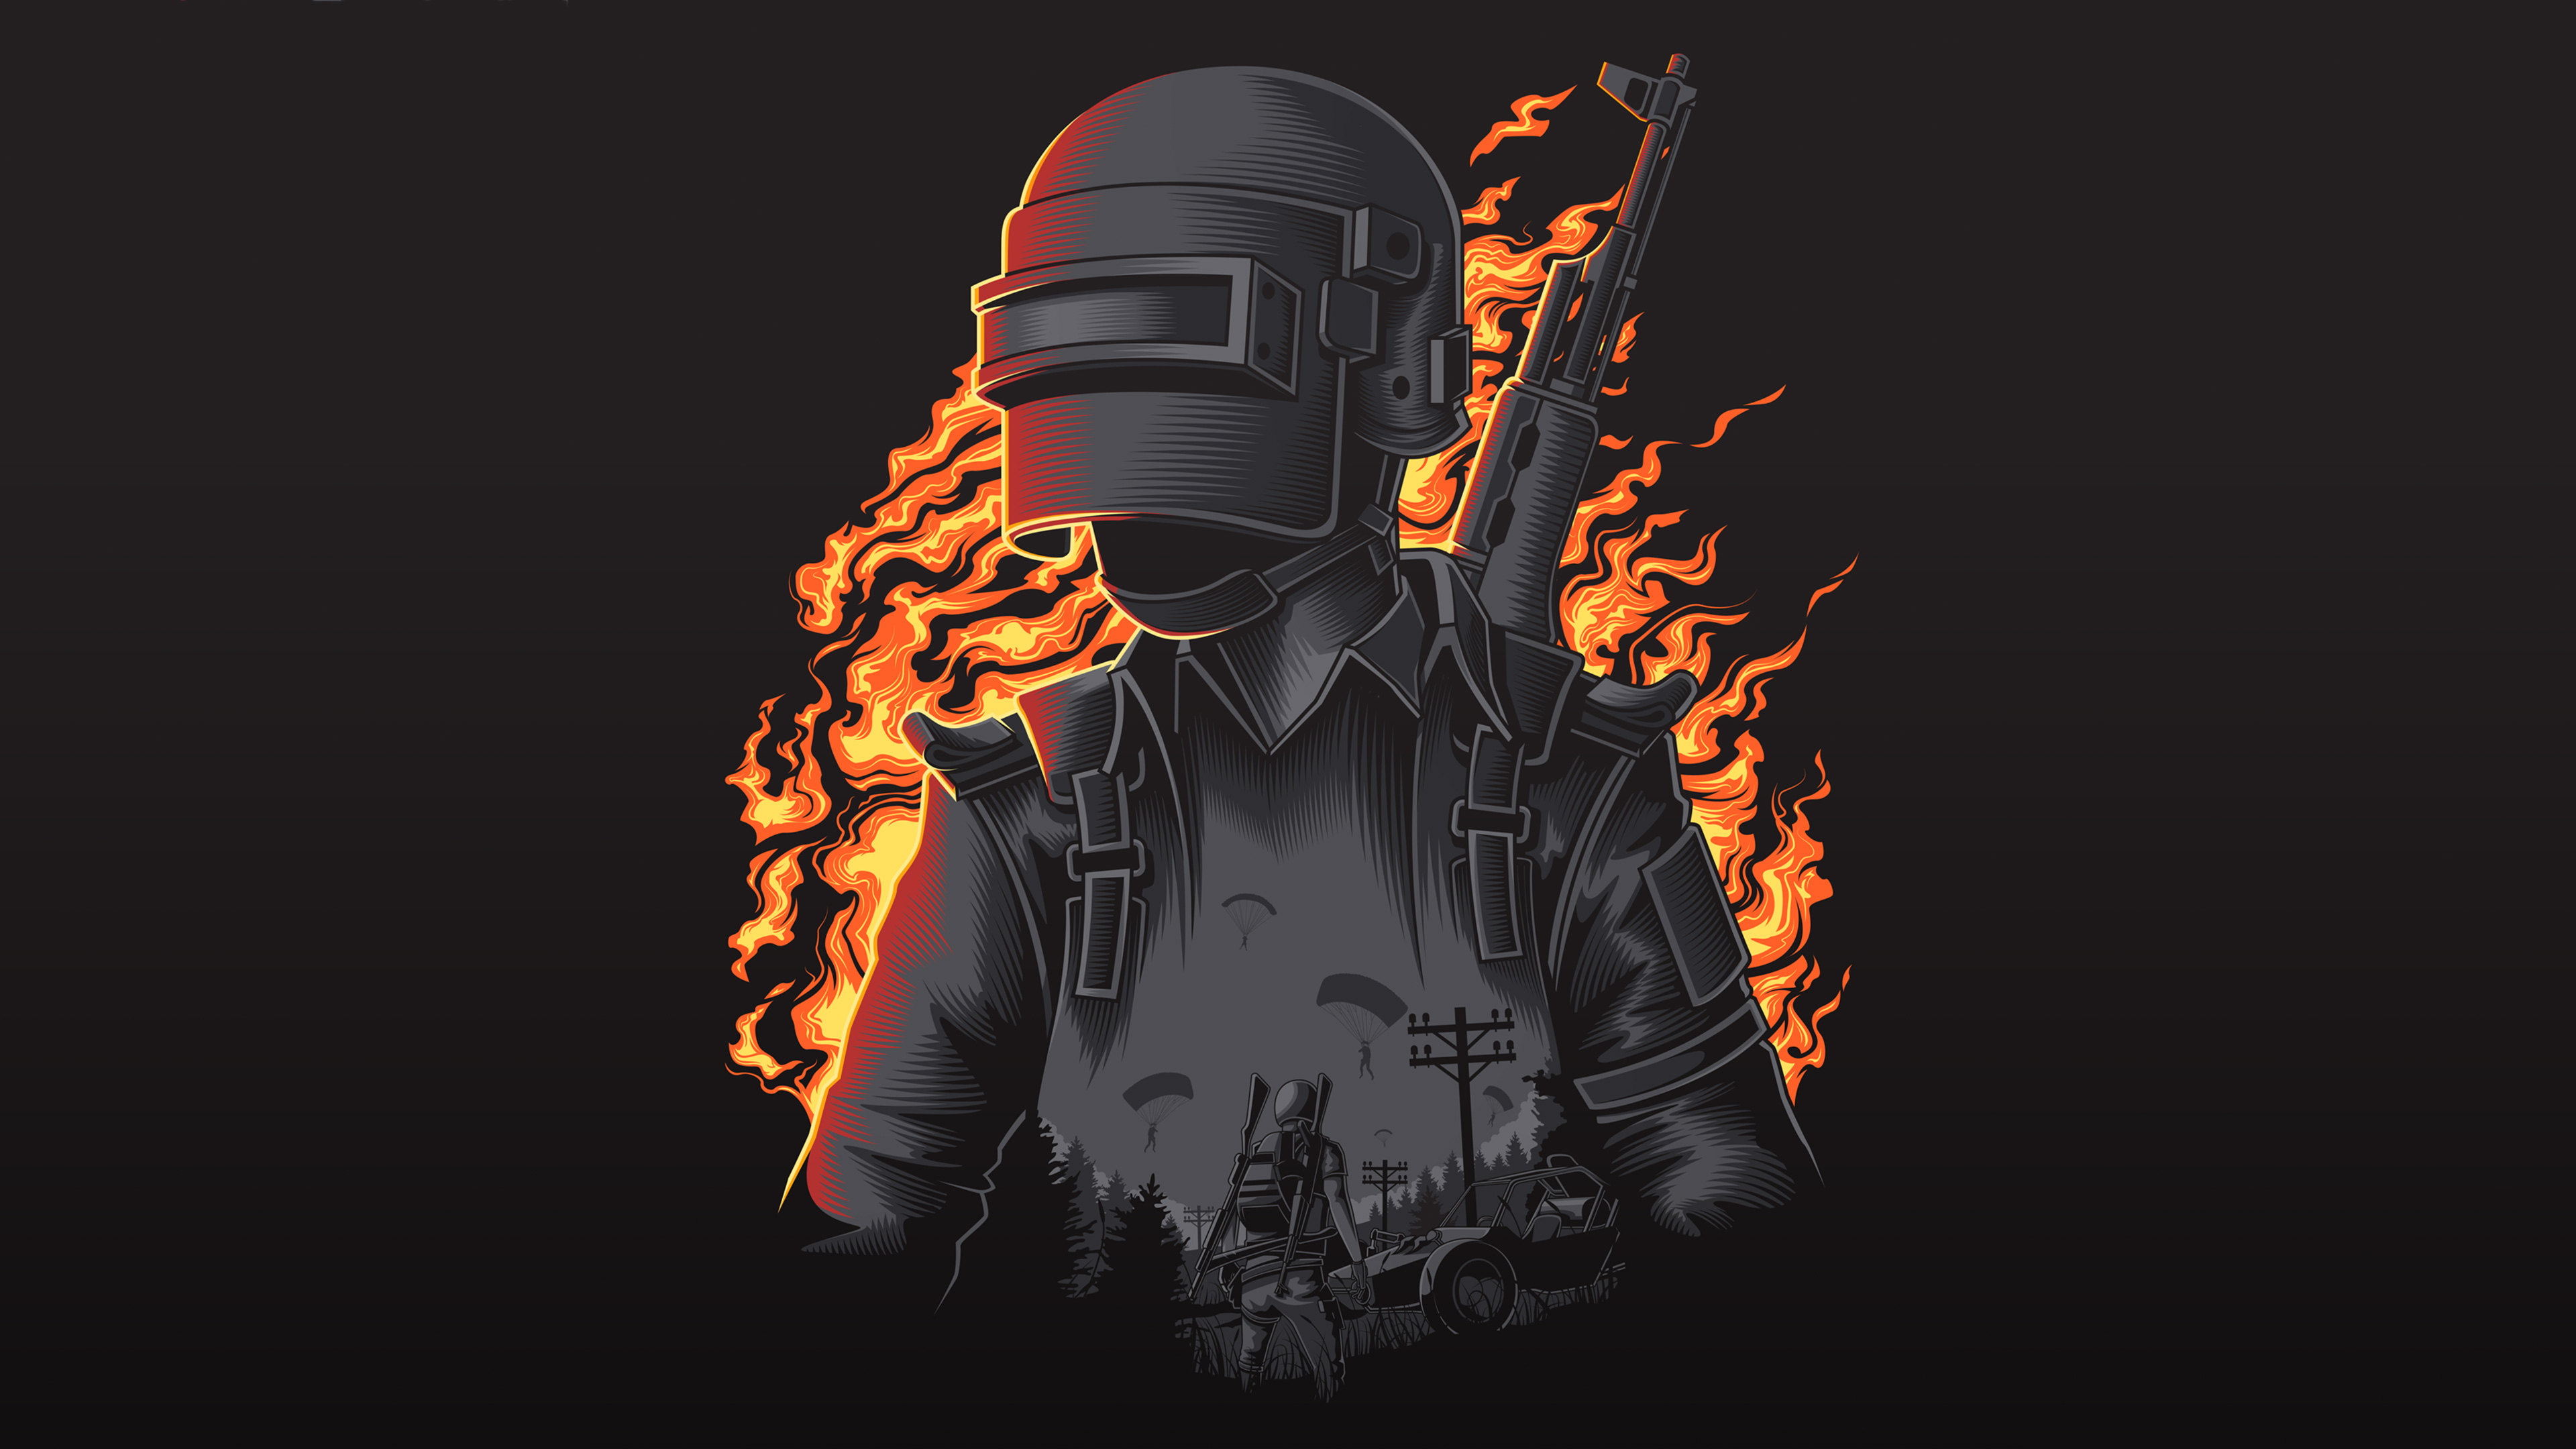 Pubg Illustration 4k, HD Games, 4k Wallpapers, Images